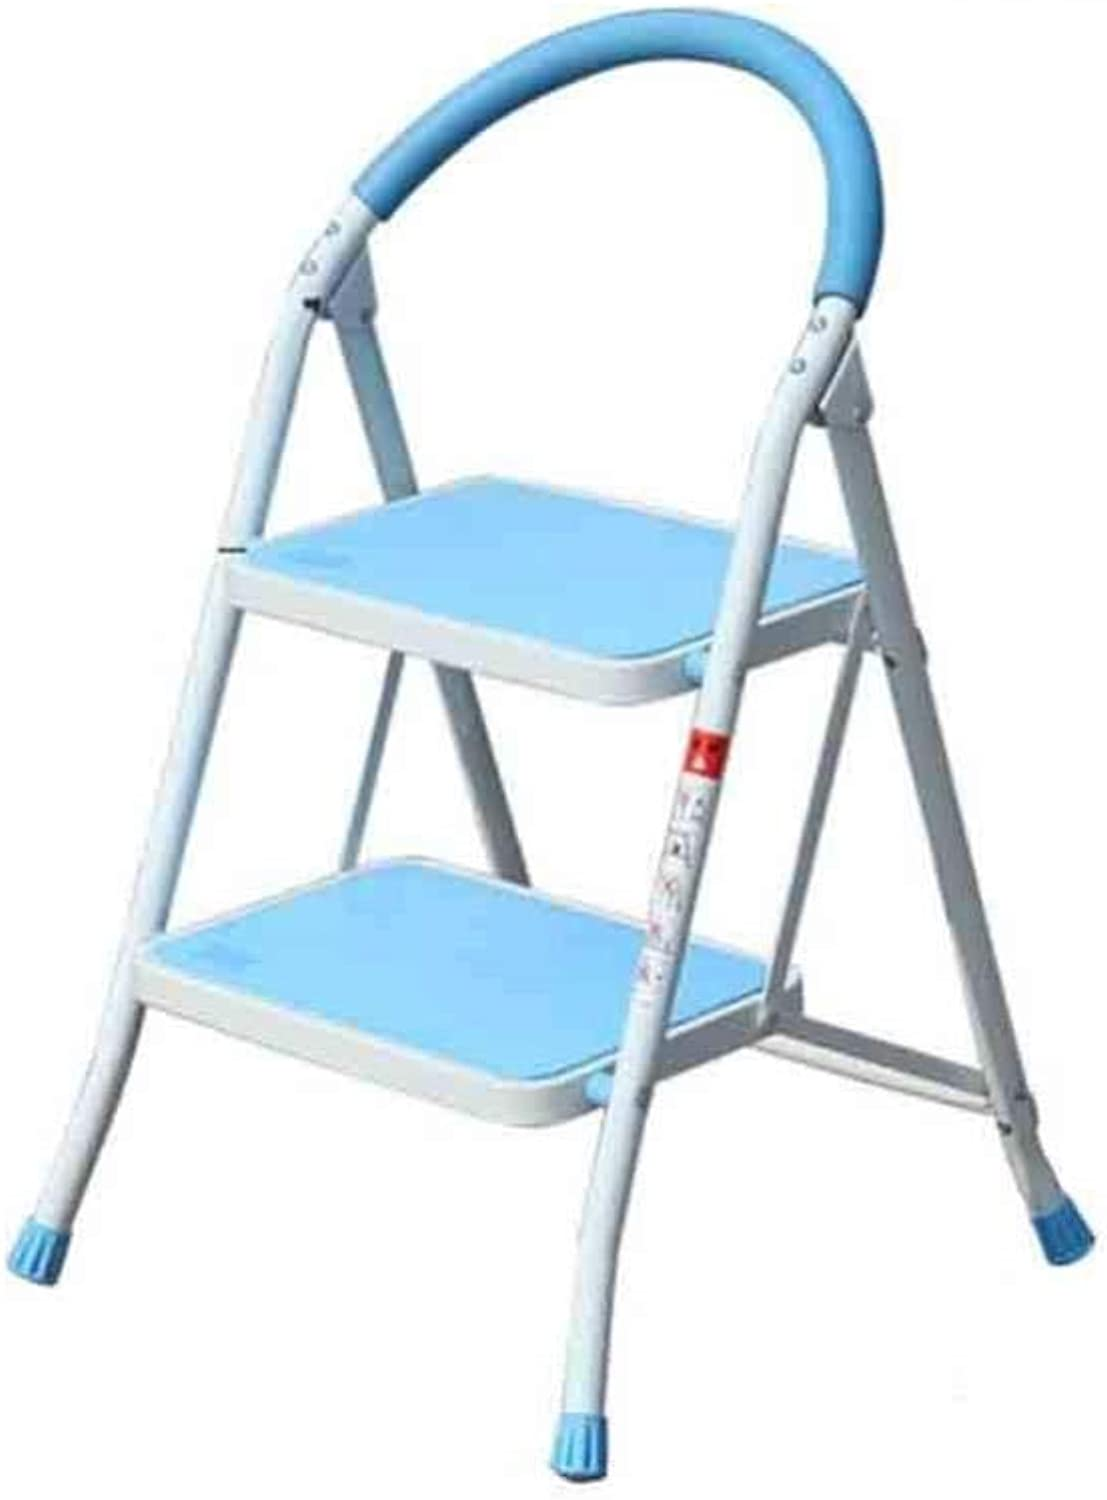 Household 2 3 Step Ladder Folding Ladder with Handle Aluminum Alloy Anti-skid Ladder Mat Family Kitchen Stool (color   bluee, Size   2 steps)